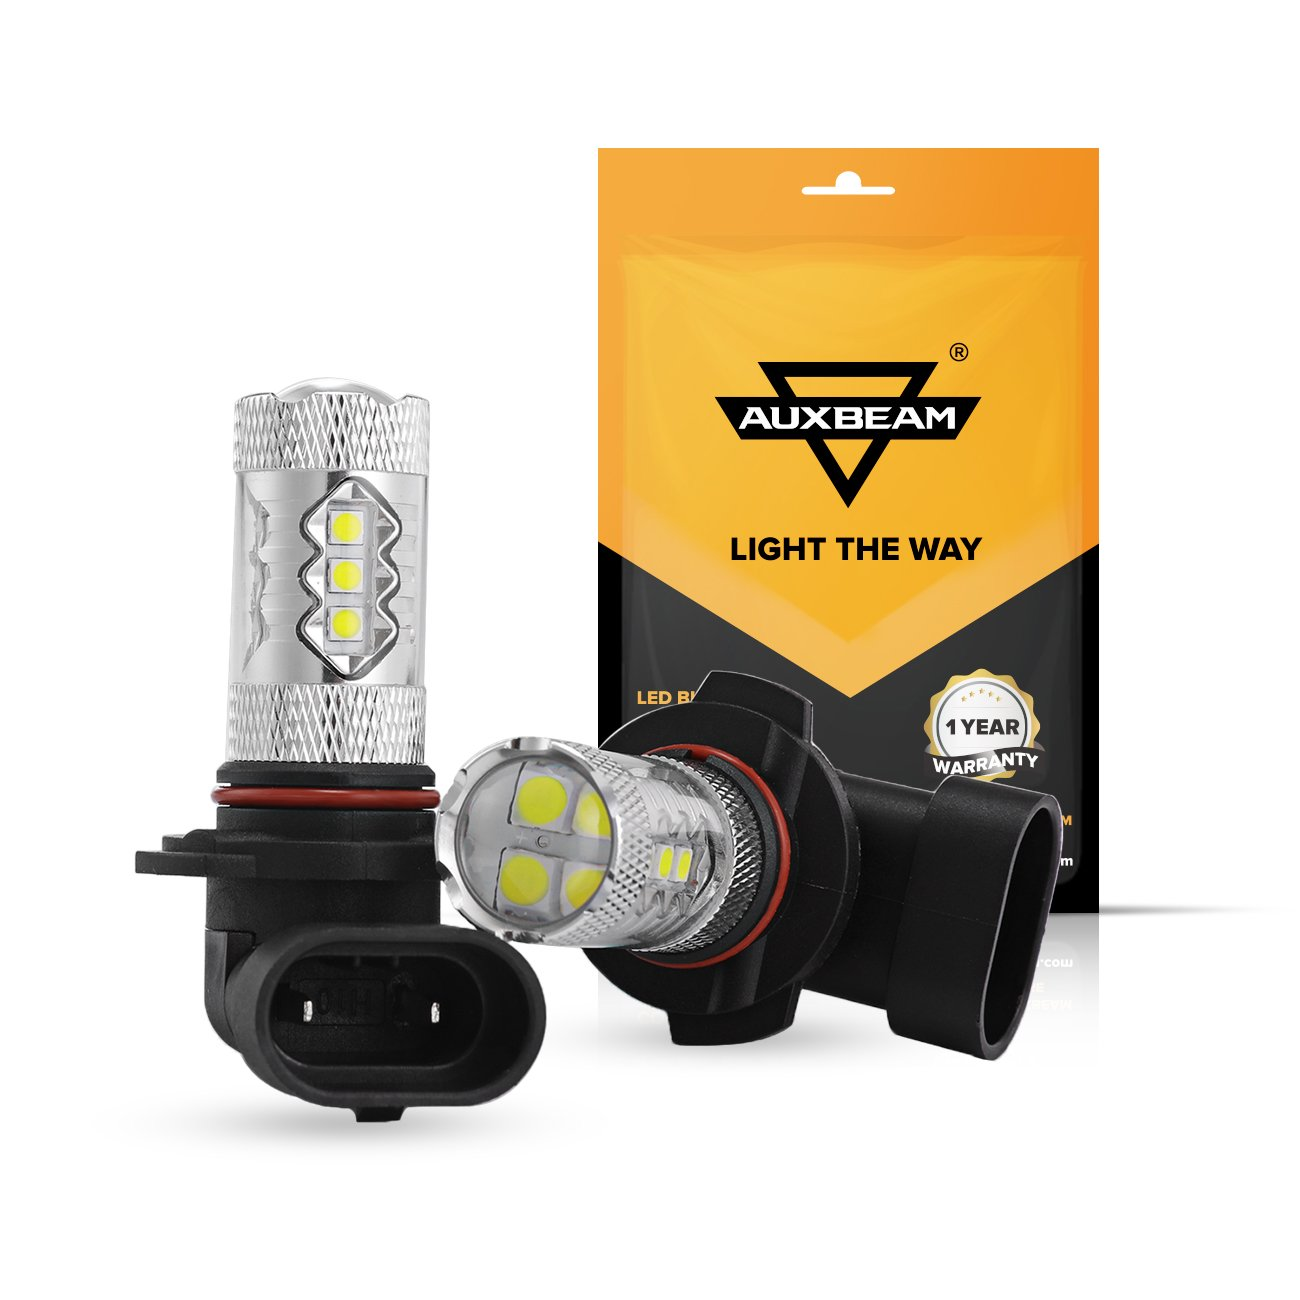 Auxbeam H10 HB3 9145 LED Light Bulb LED Bulbs for Signal, Turn, Brake, Parking, Tail, DRL and Fog lights (Pack of 2)